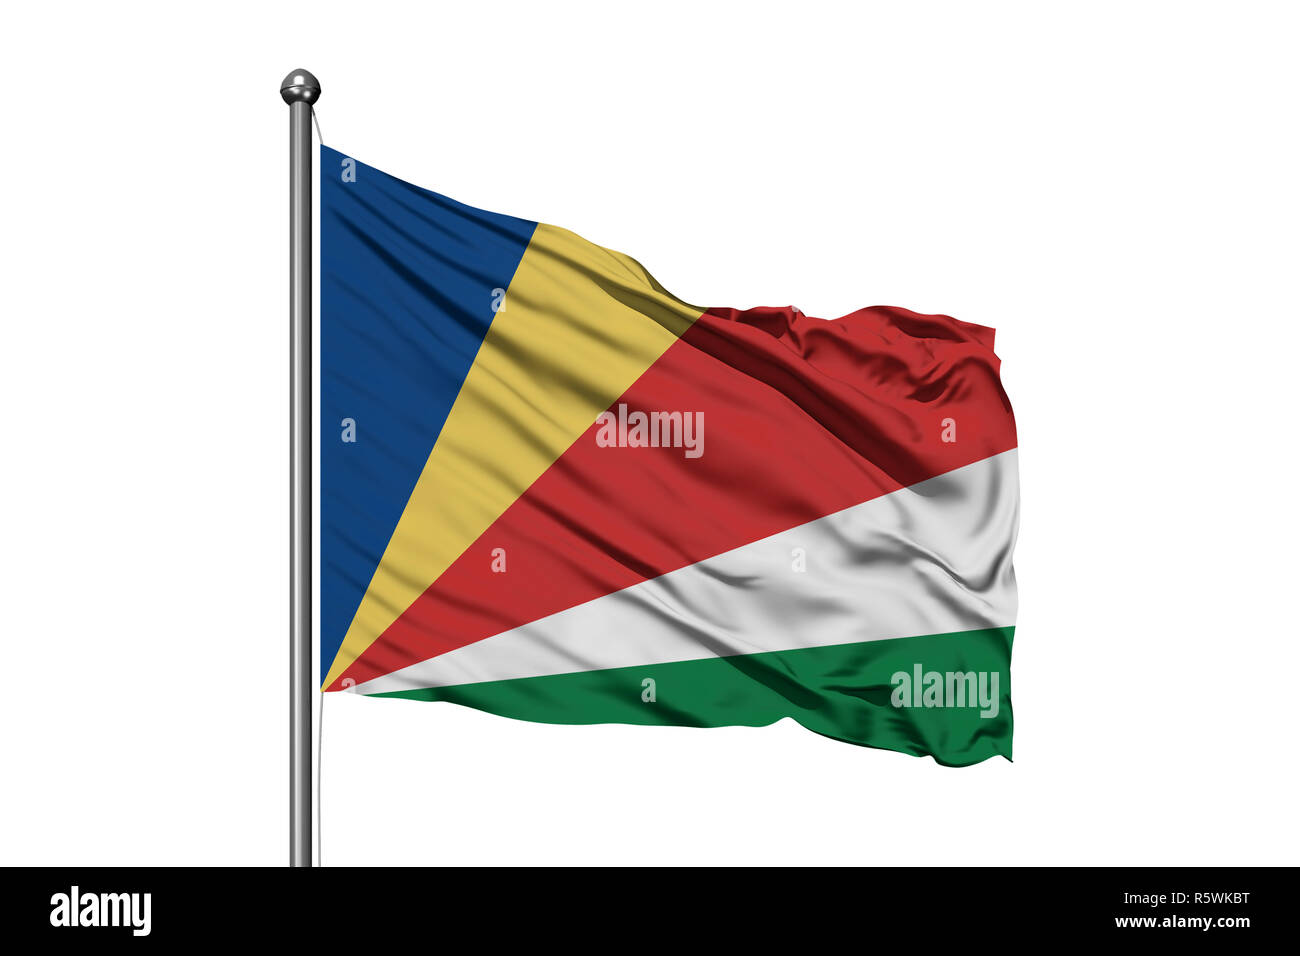 Flag of Seychelles waving in the wind, isolated white background. Seychellois flag. - Stock Image